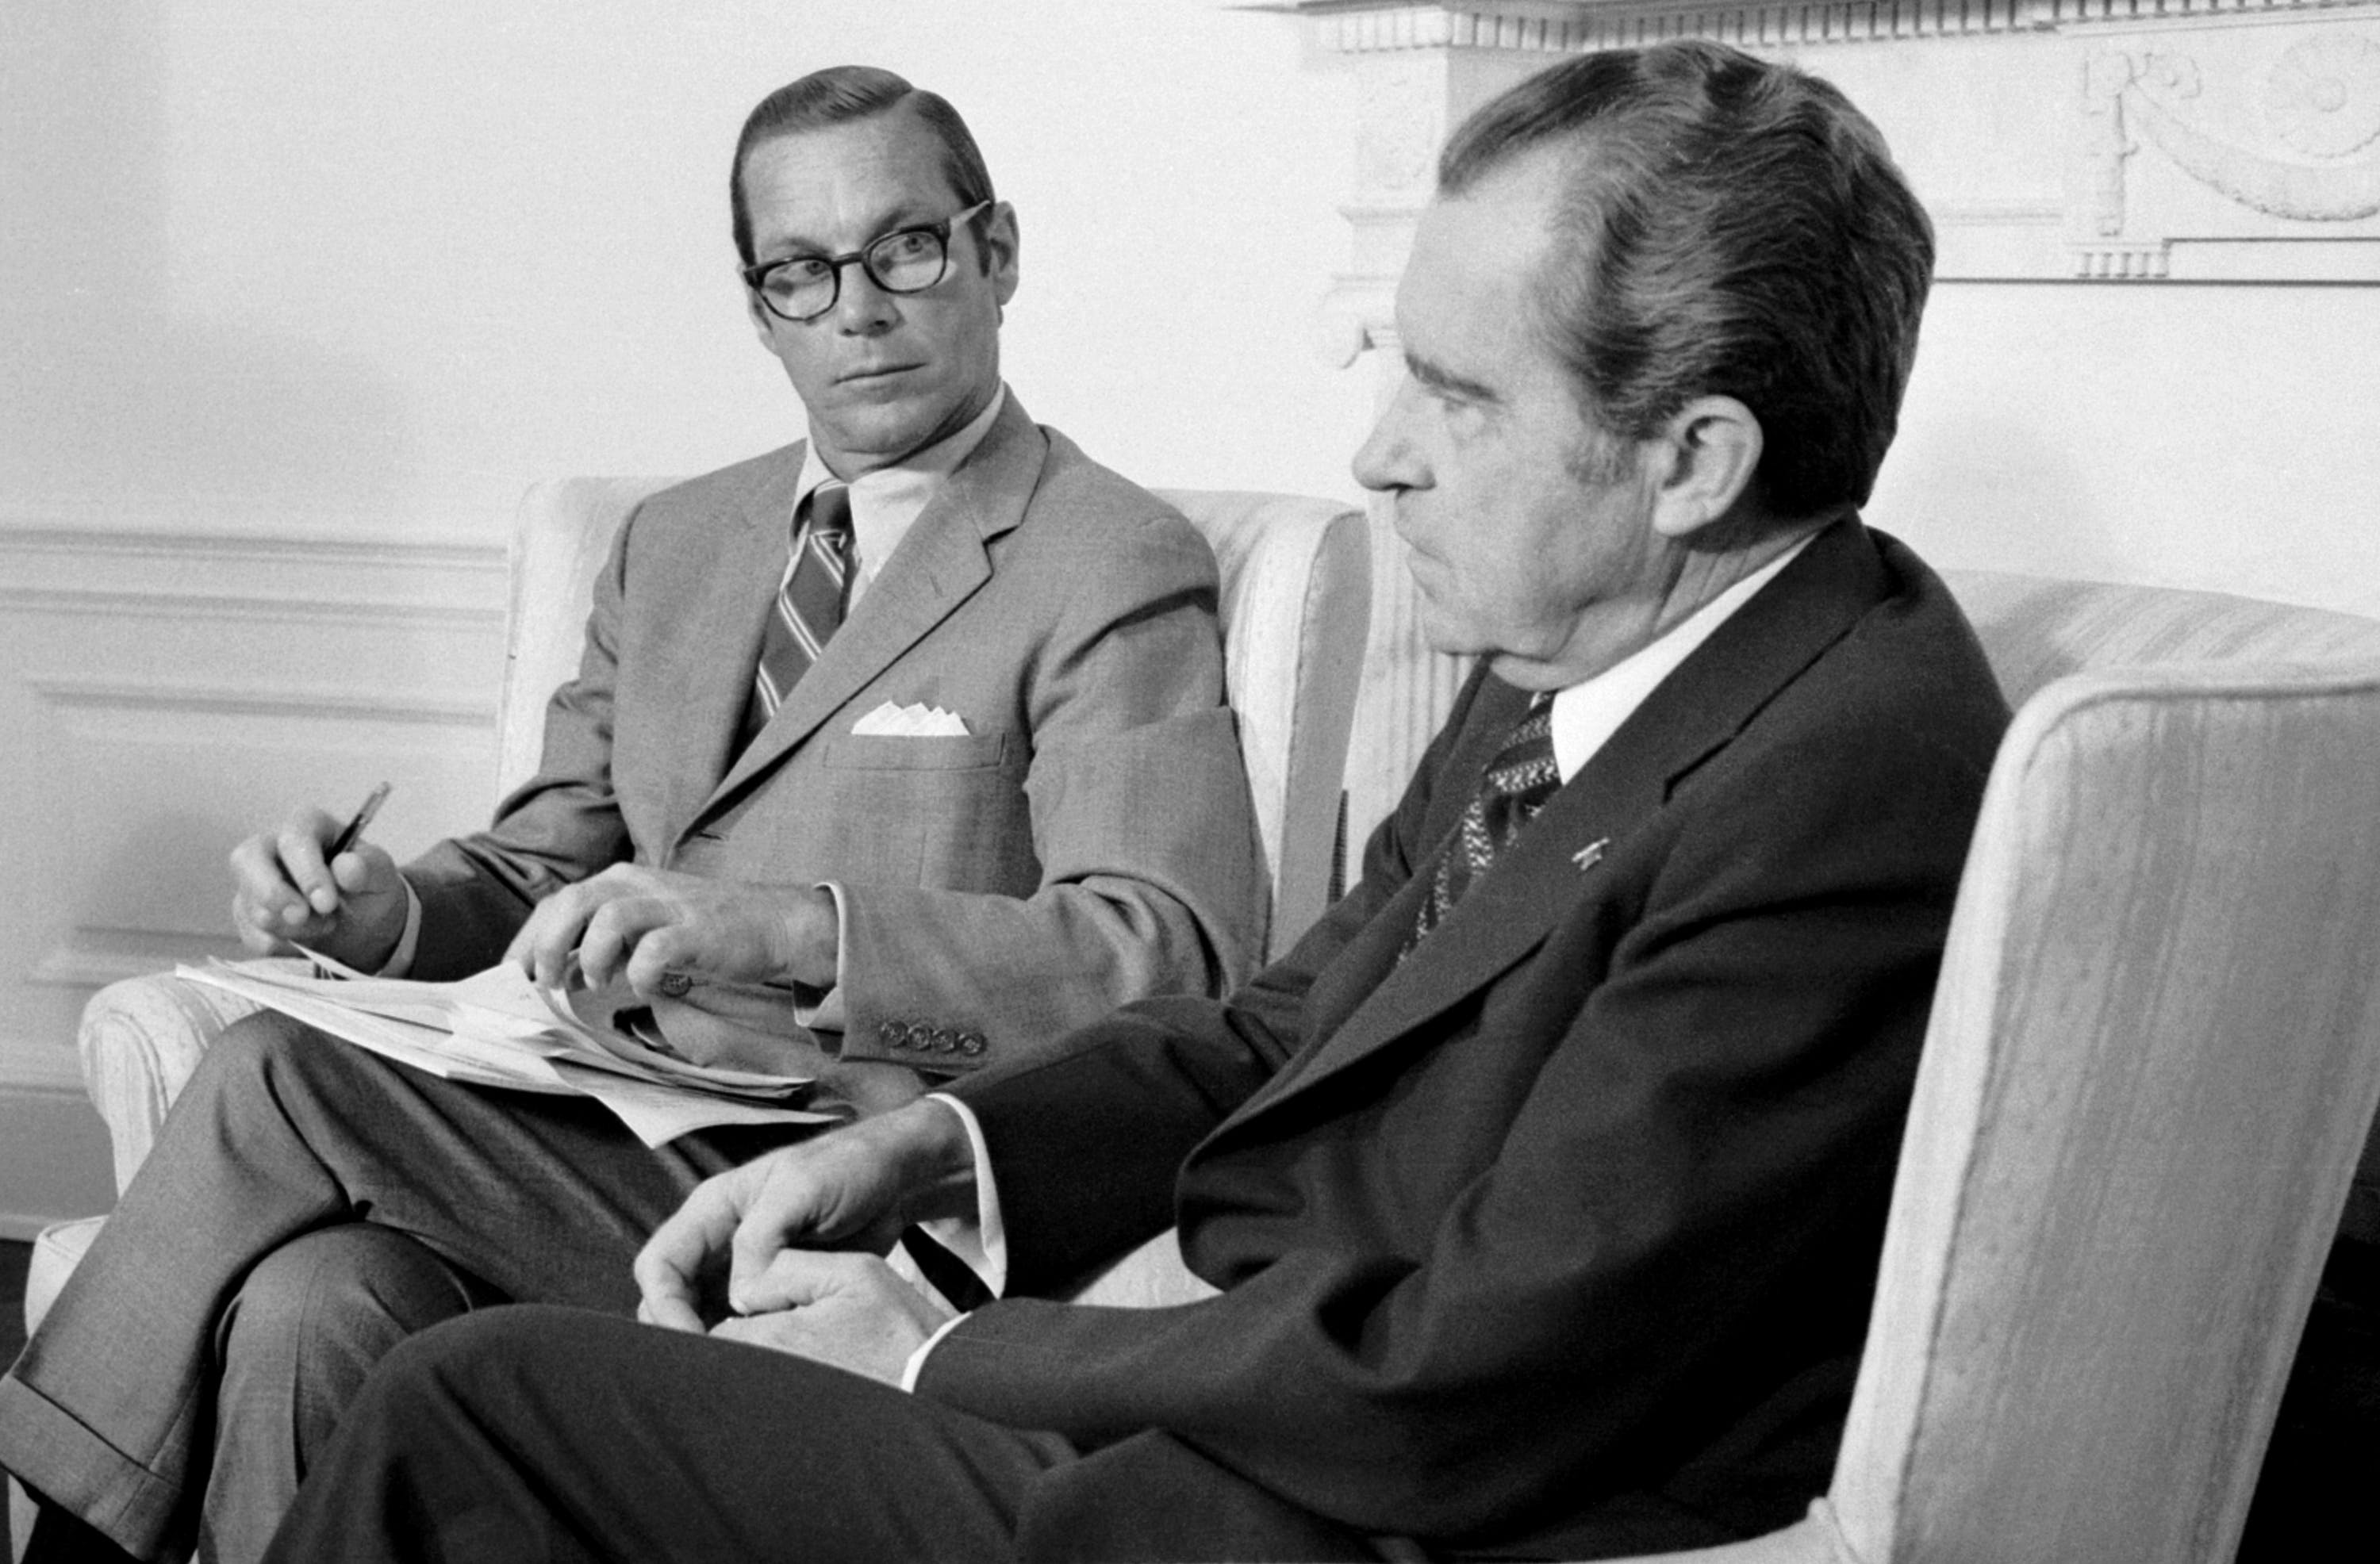 (Original Caption) Federal Energy Chief William Simon meets with President Nixon at the White House here. Upon emerging from the meeting, Simon announced an emergency gasoline allocation to the 20 states hardest hit by the fuel crisis to help eliminate long lines at service stations.